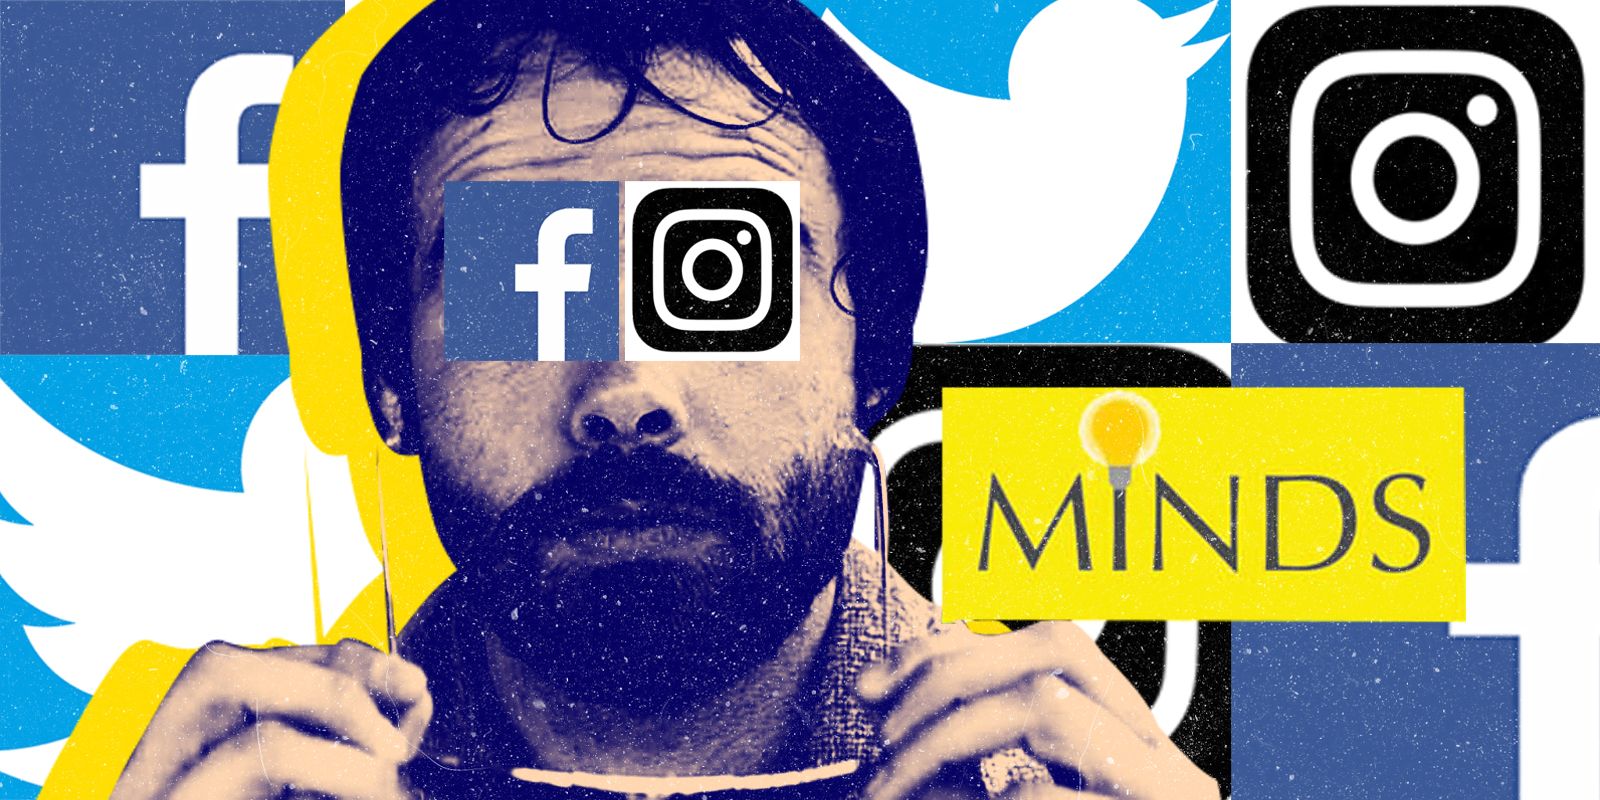 Social media and censorship: Is Minds the answer?